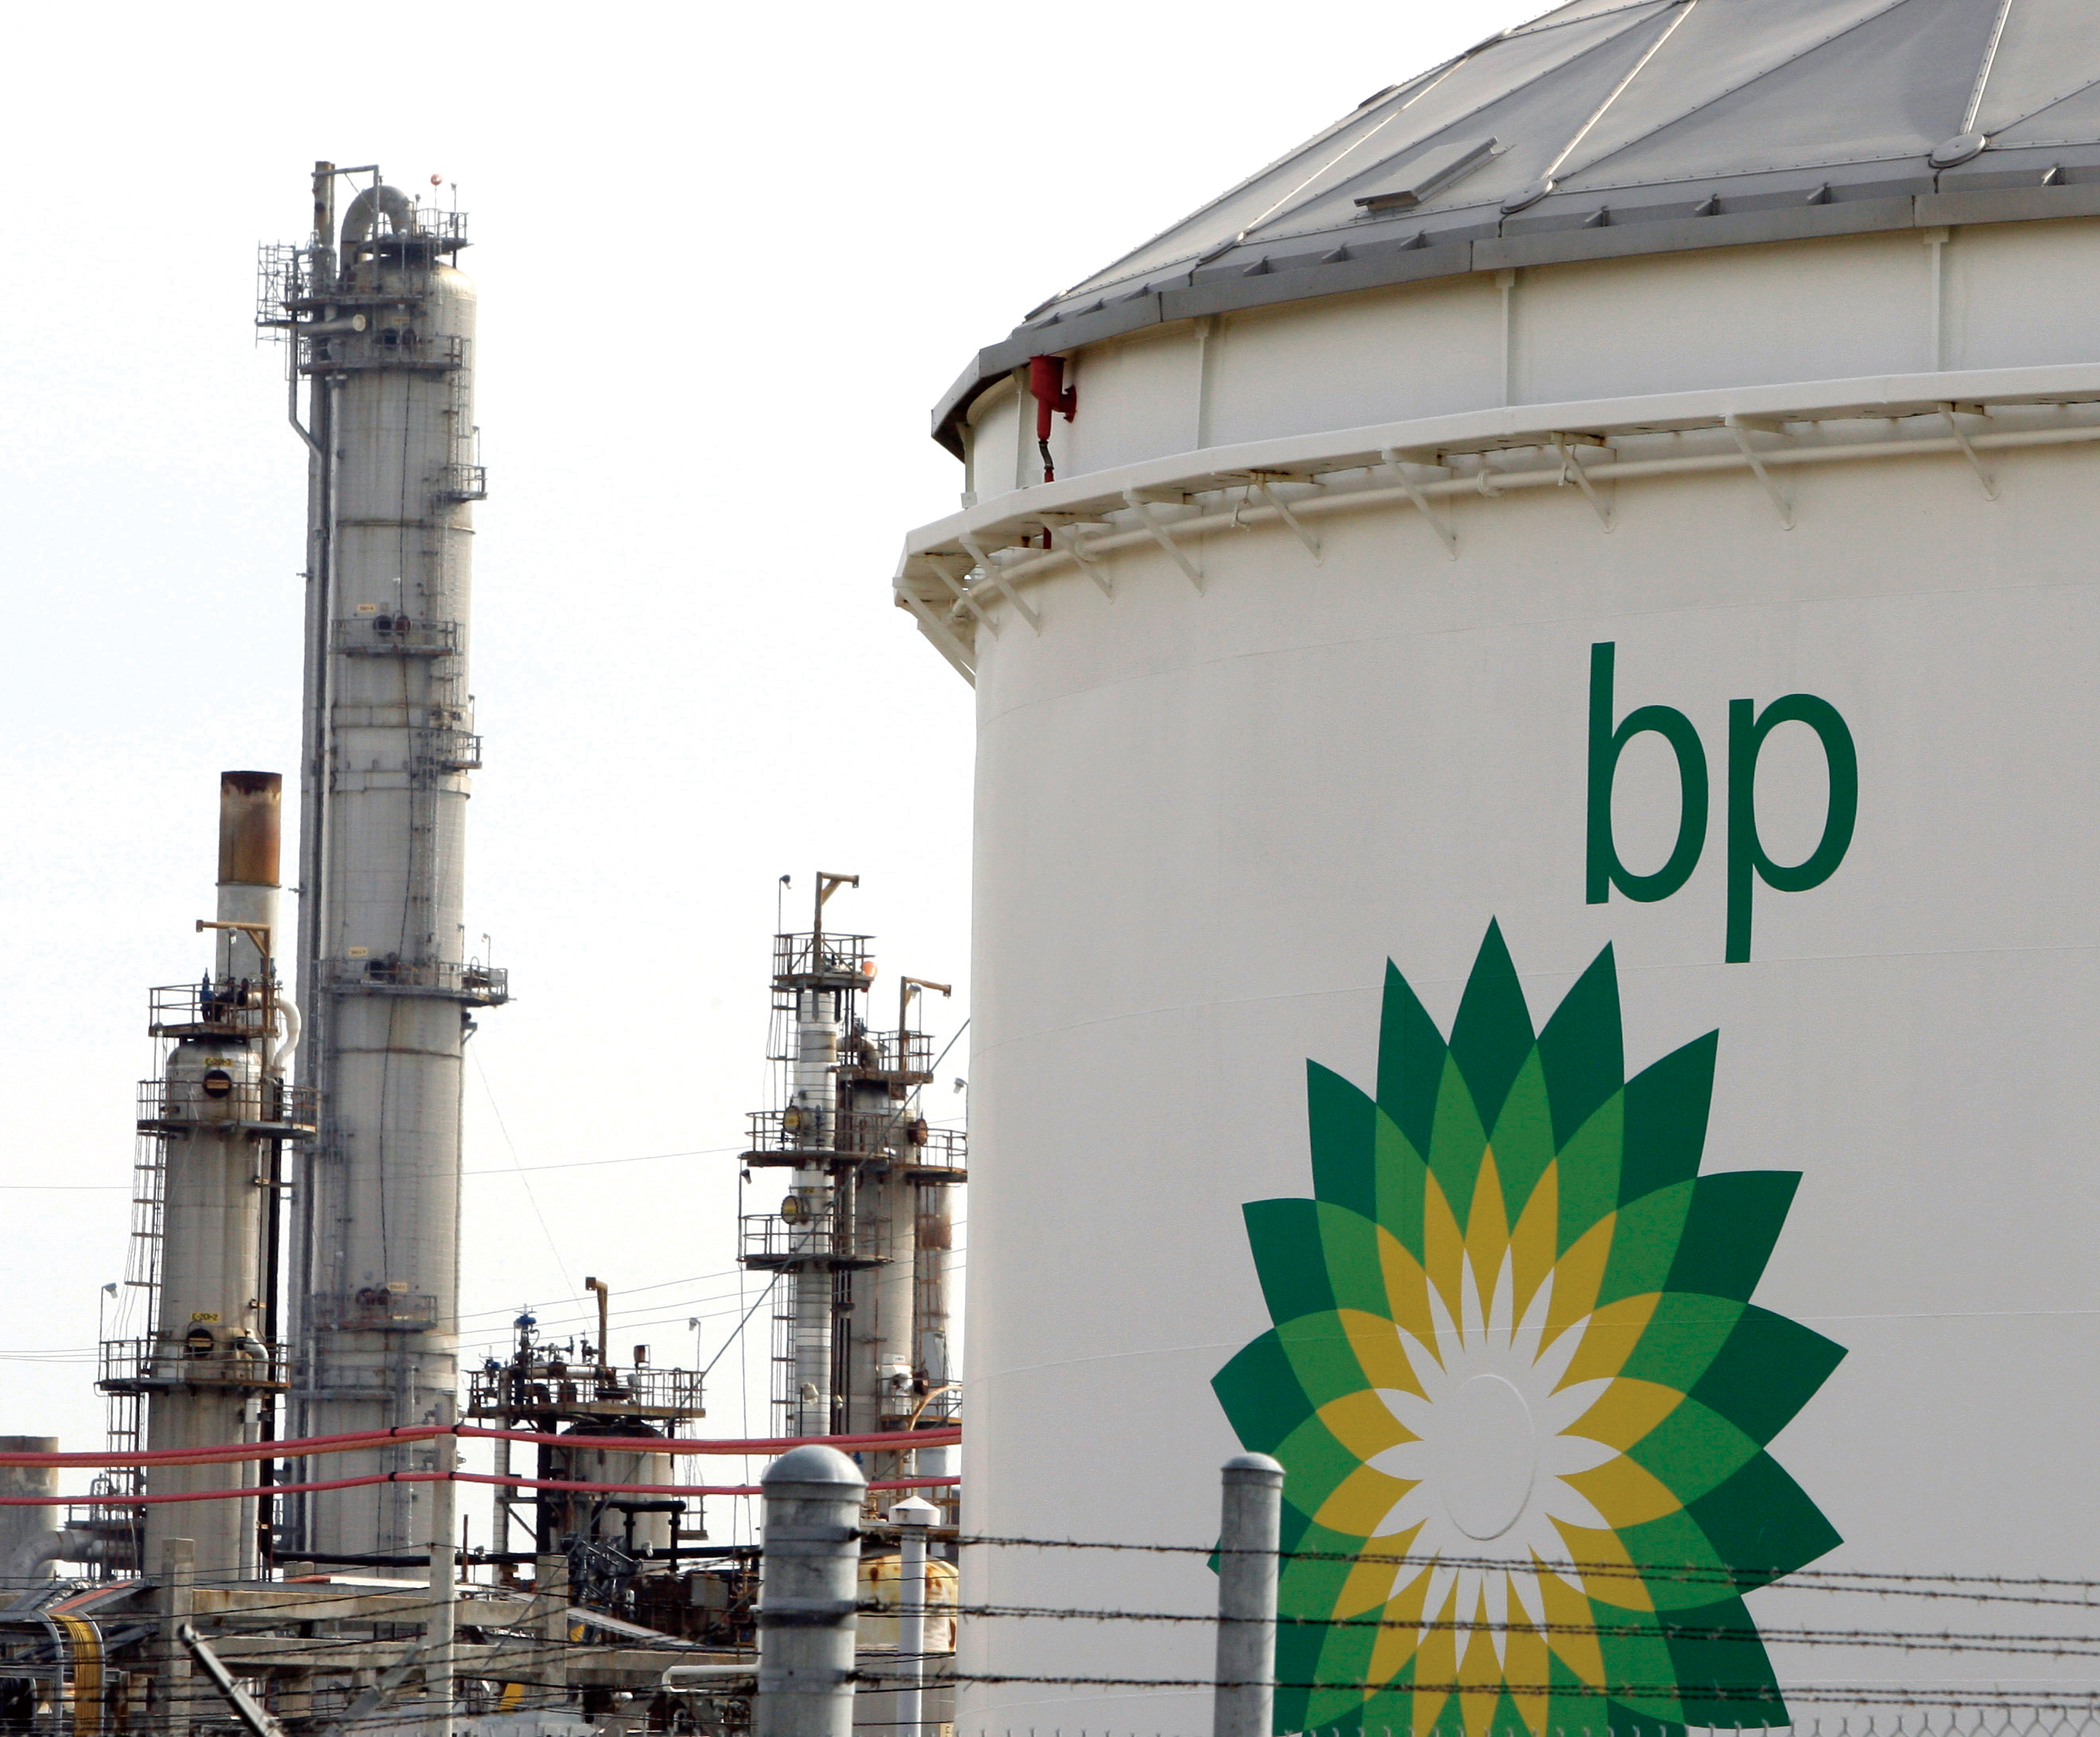 This Jan. 4, 2008 file photo shows BP's Texas City refinery in Texas City, Texas.(Associated Press)